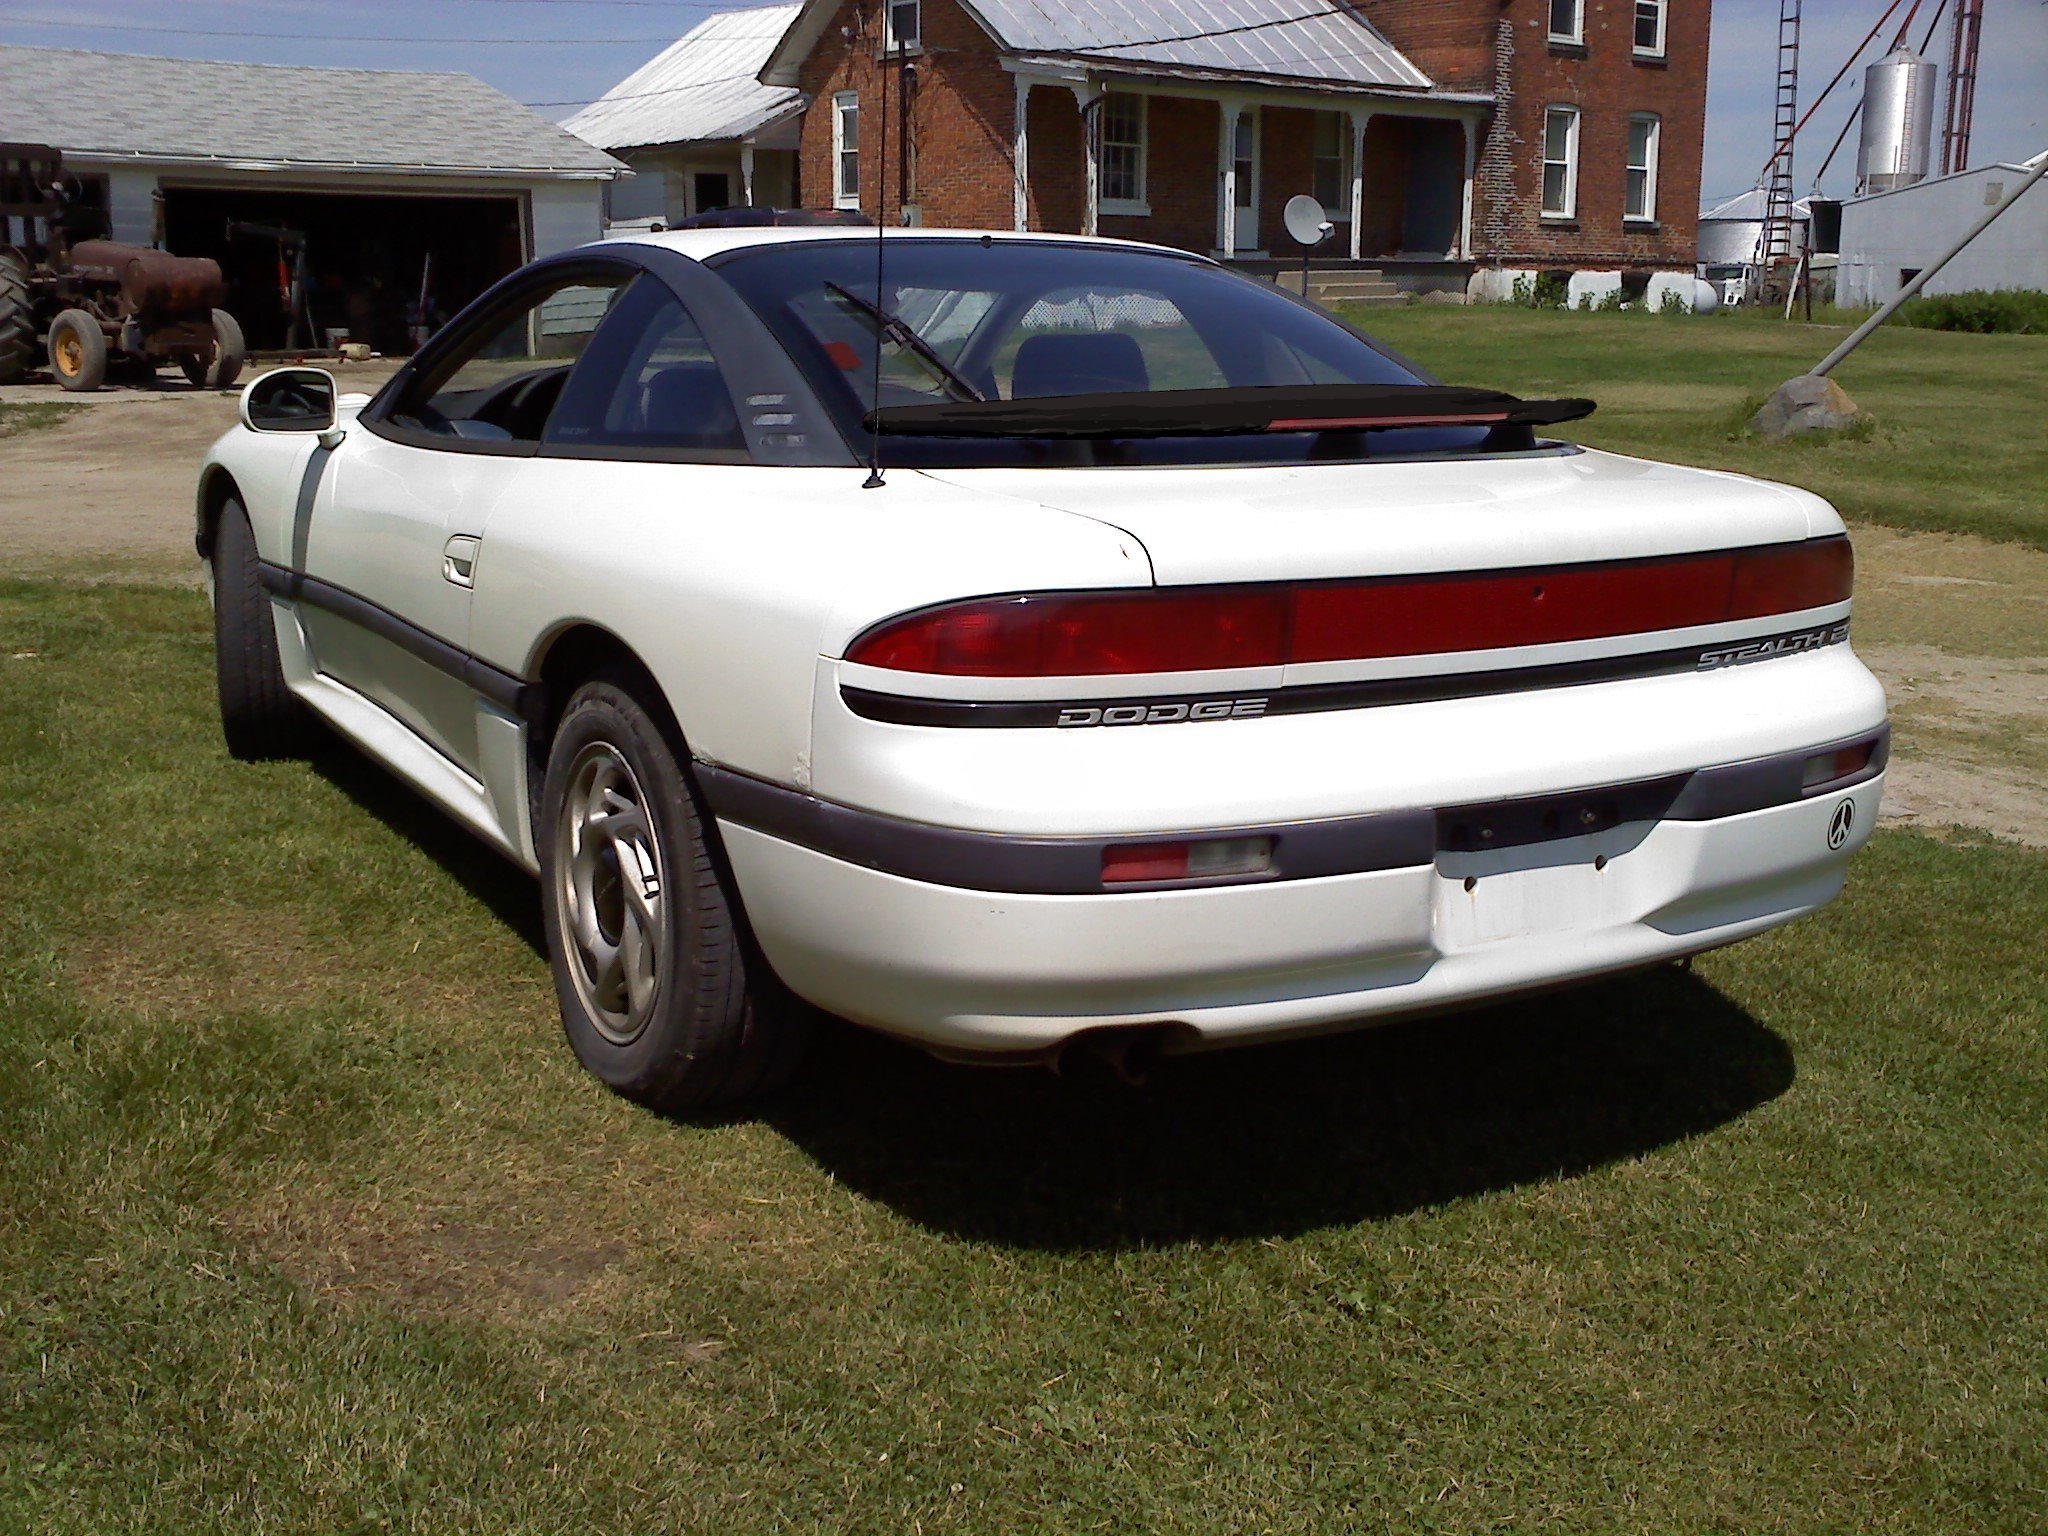 dviper0020 39 s 1992 dodge stealth in monroe mi. Black Bedroom Furniture Sets. Home Design Ideas